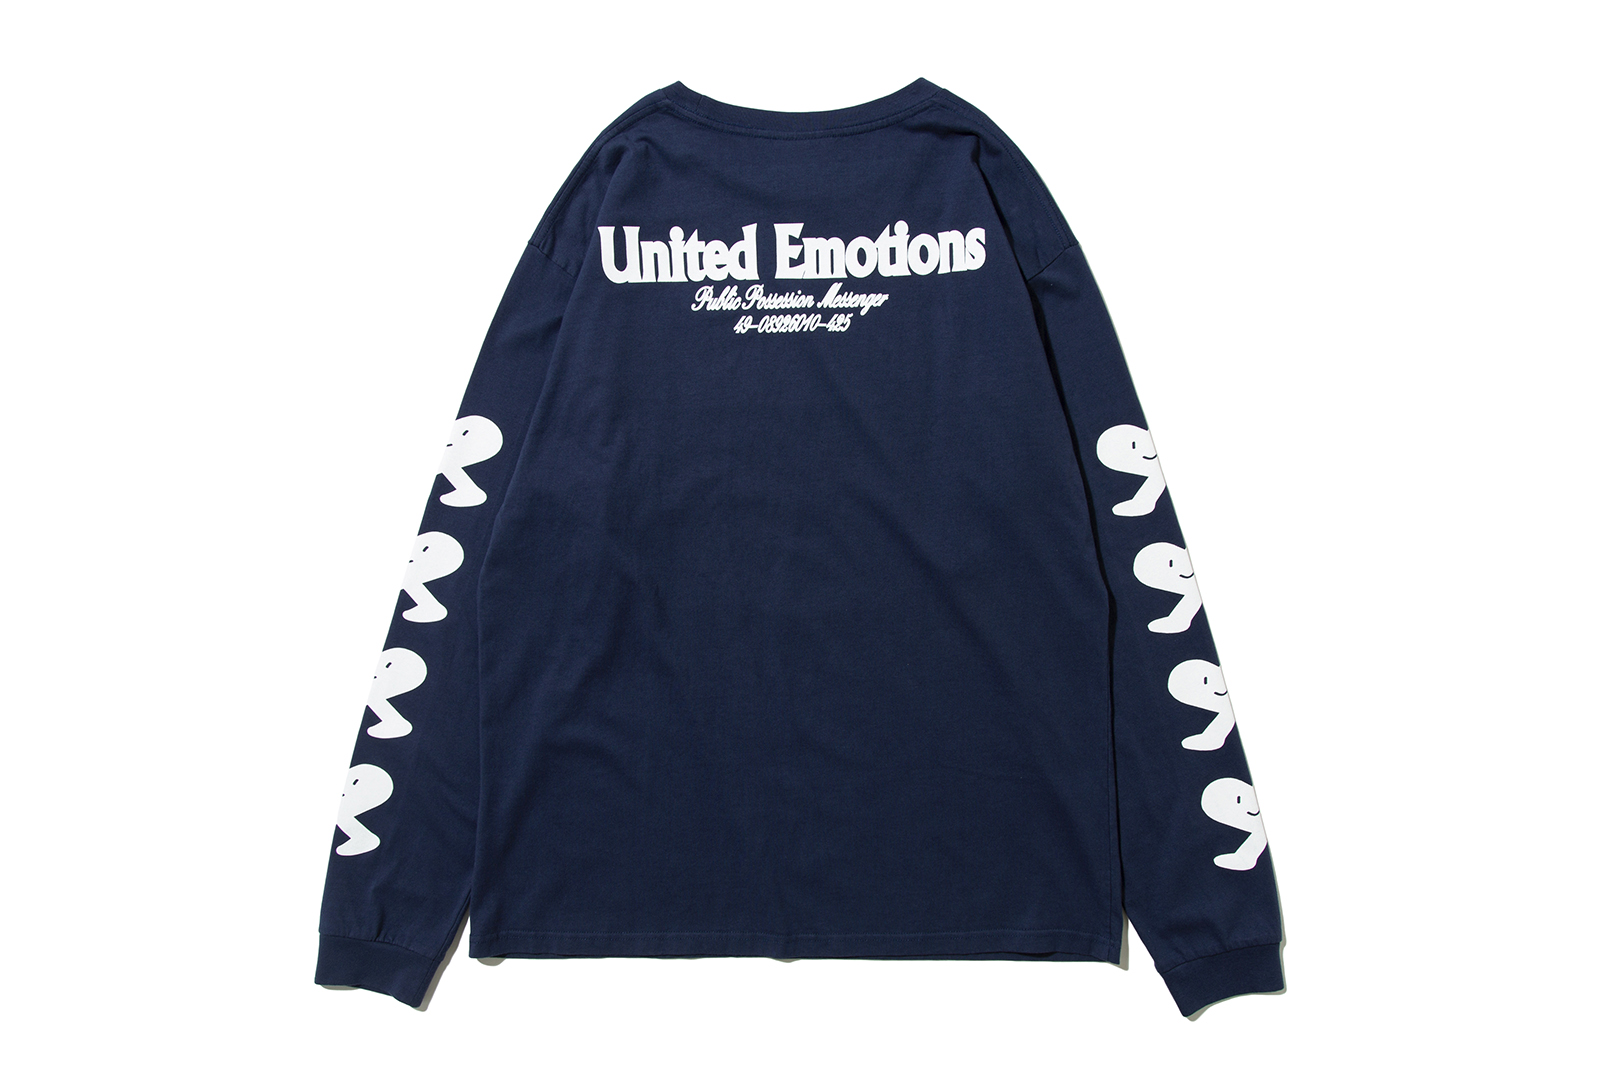 united-emotions-l-s-tee_p1